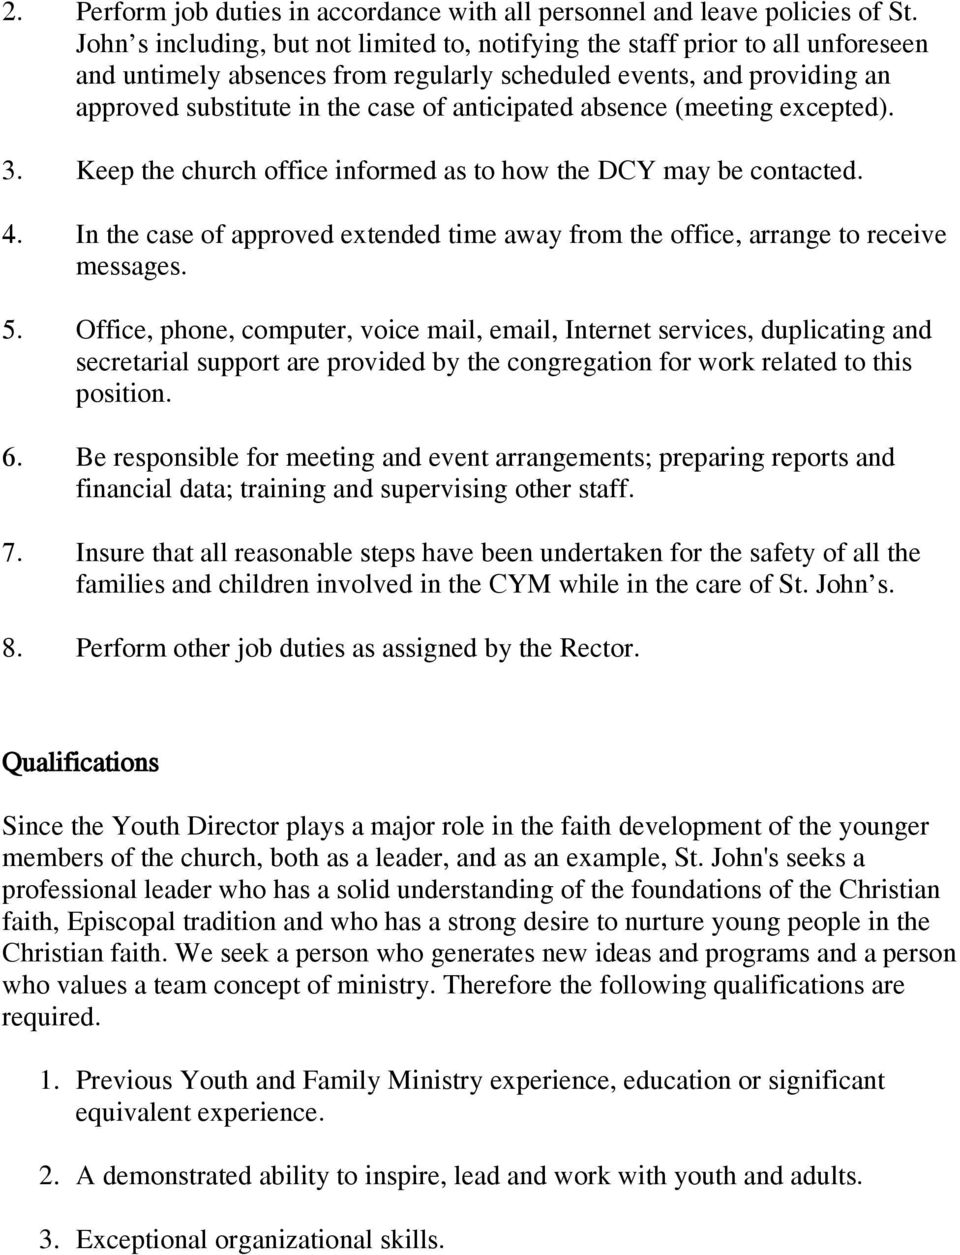 anticipated absence (meeting excepted). 3. Keep the church office informed as to how the DCY may be contacted. 4.